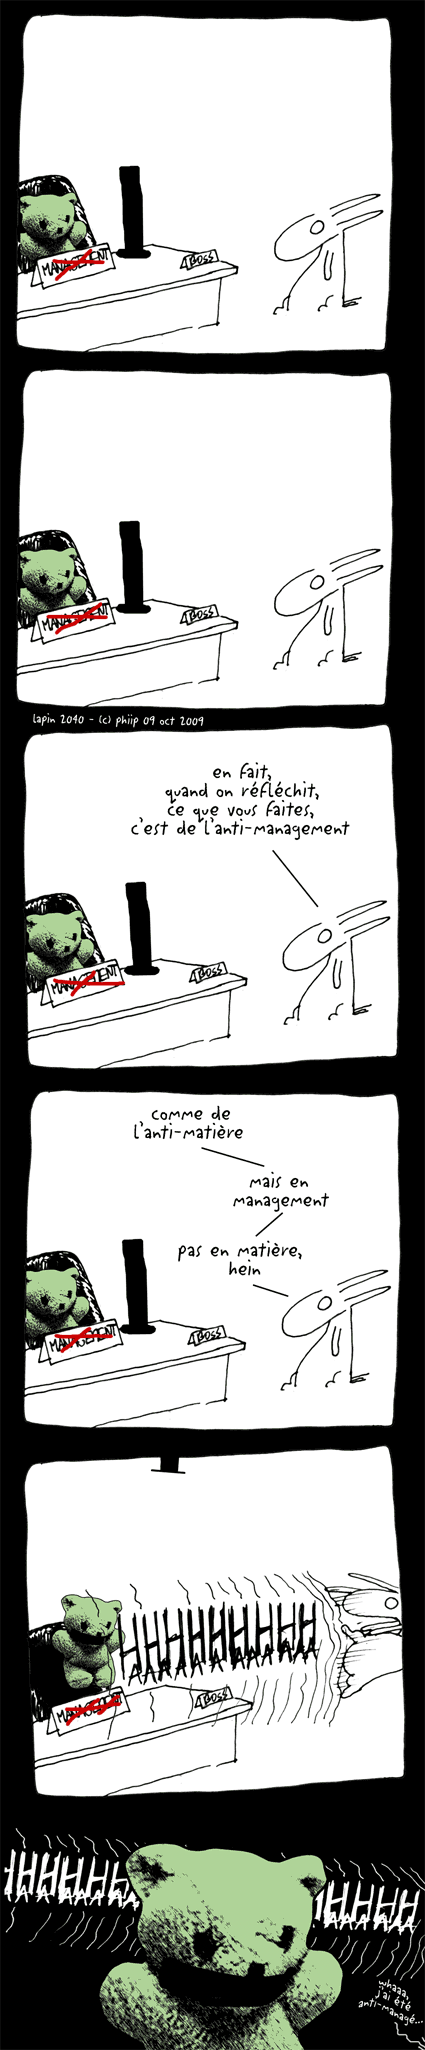 anti-management